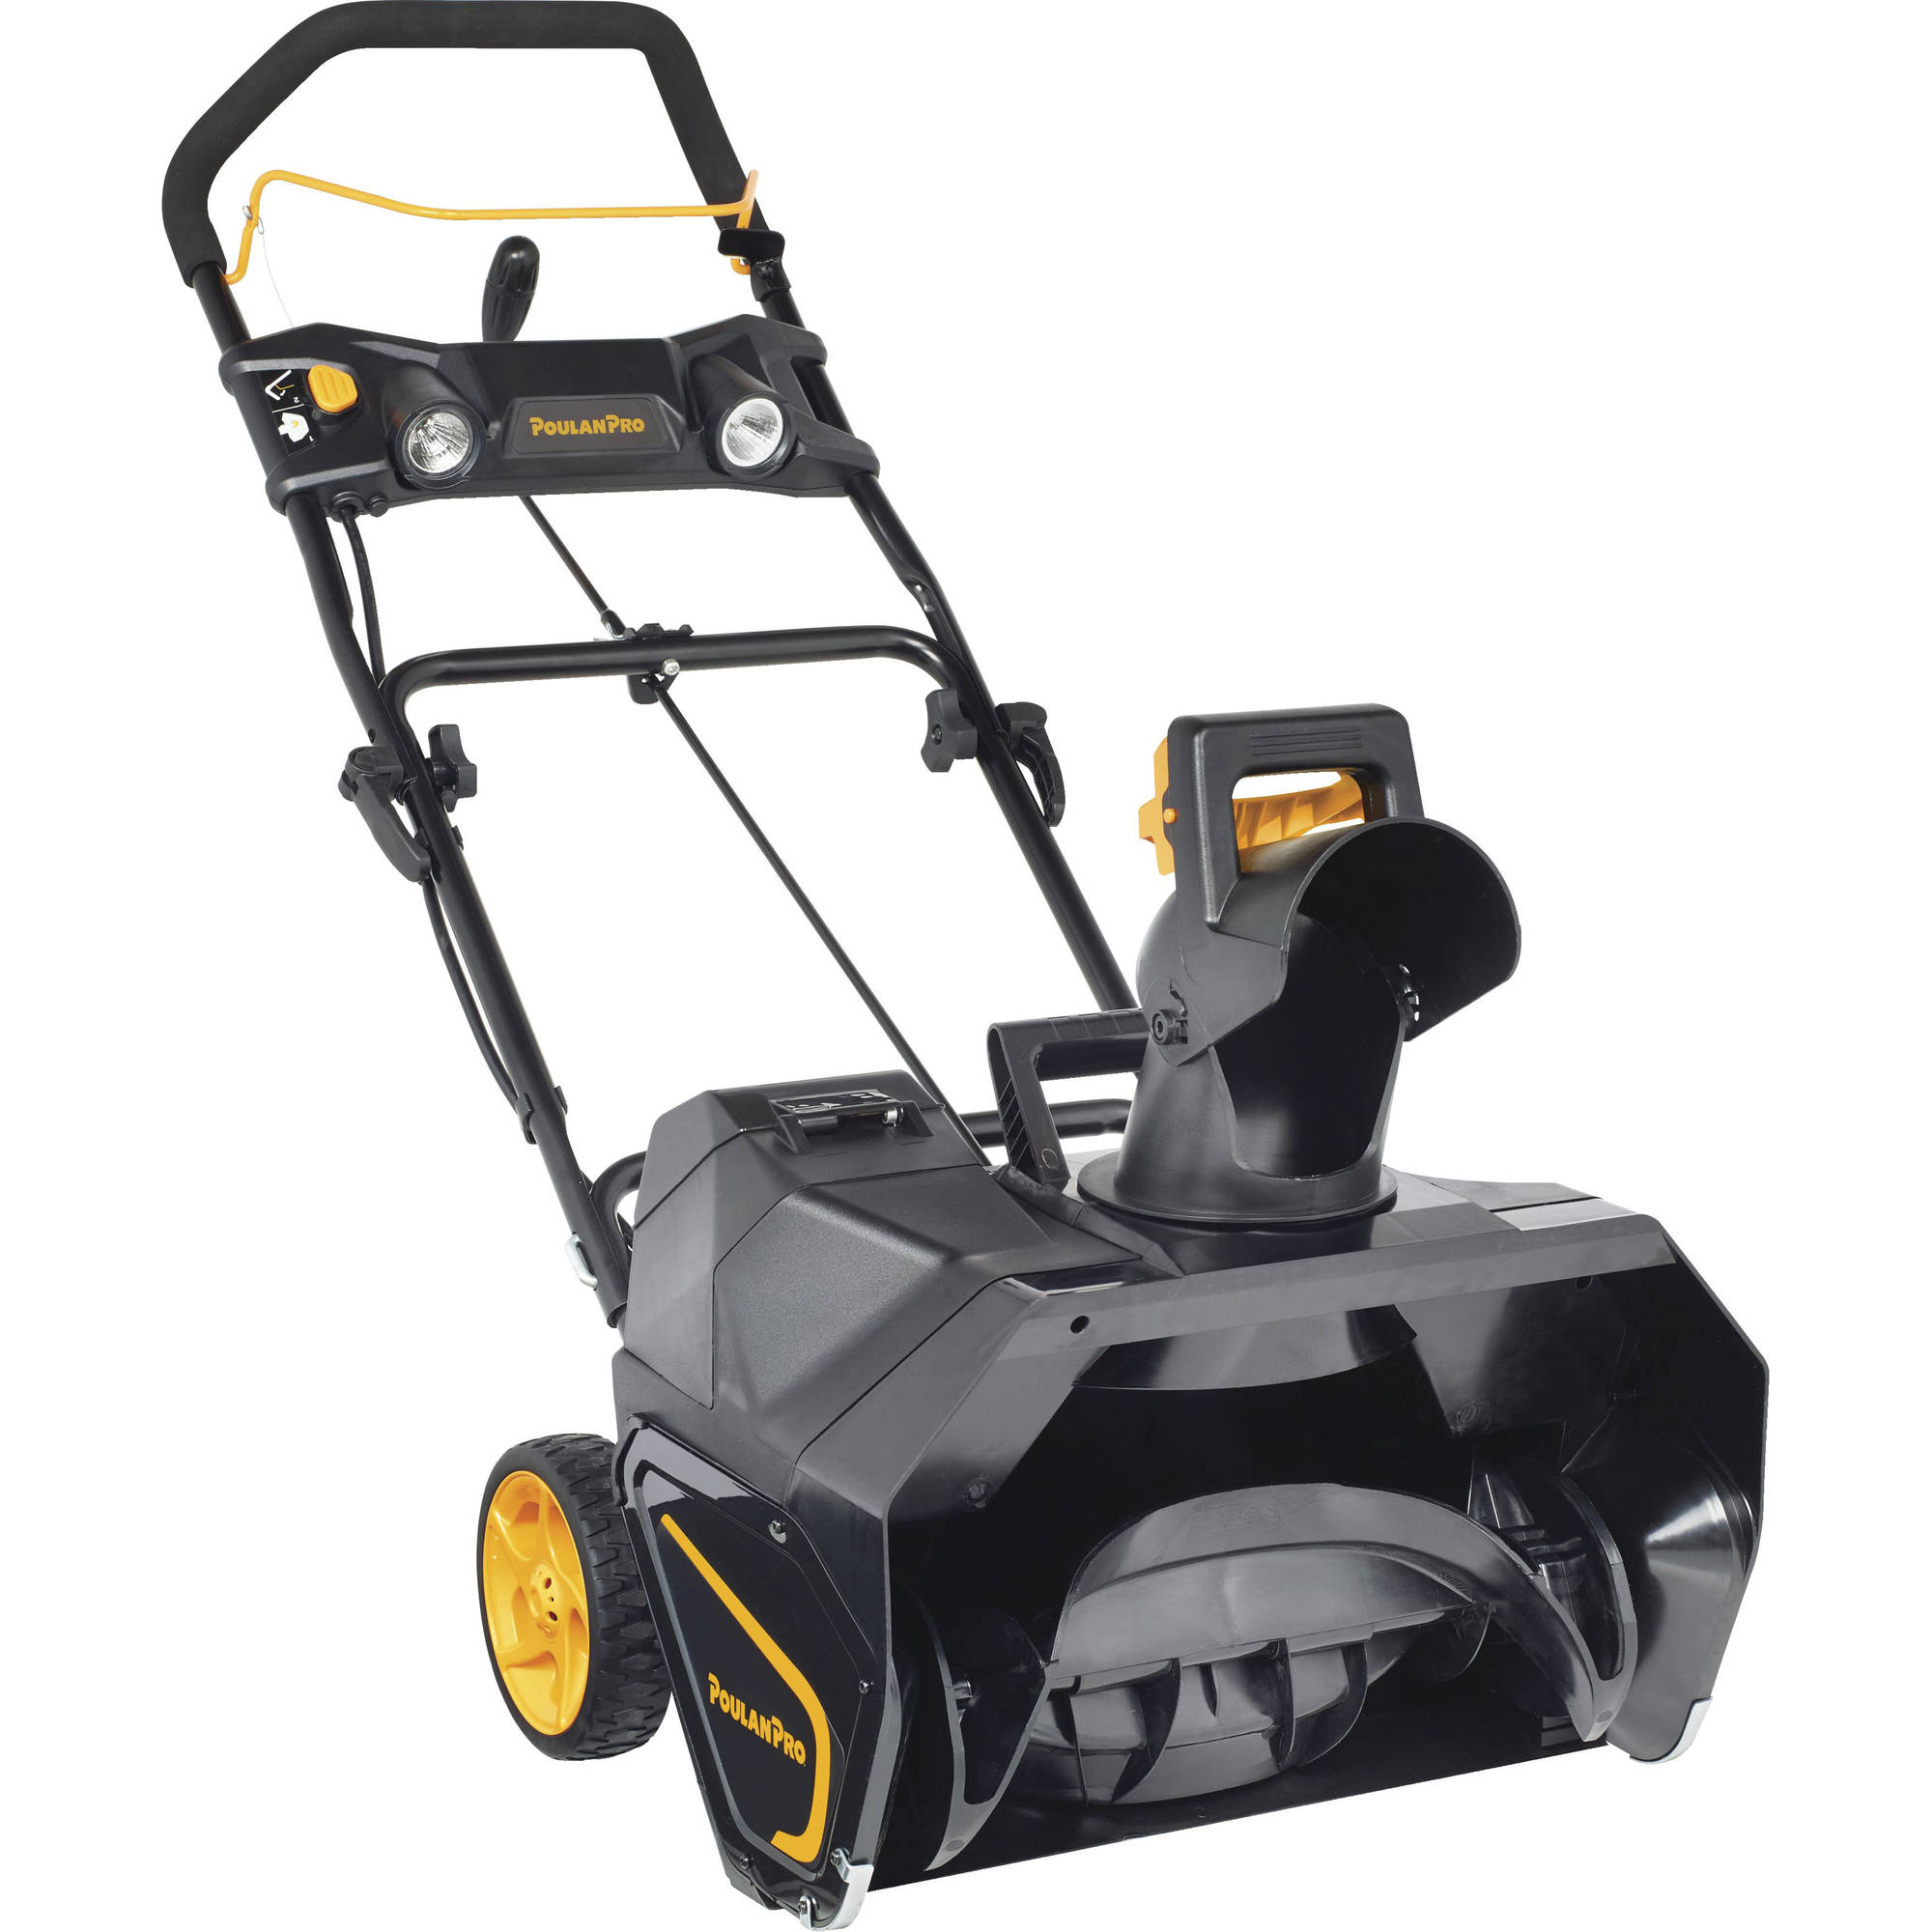 Poulan Pro 40-Volt Lithium-Ion Rechargeable Battery Snow Thrower